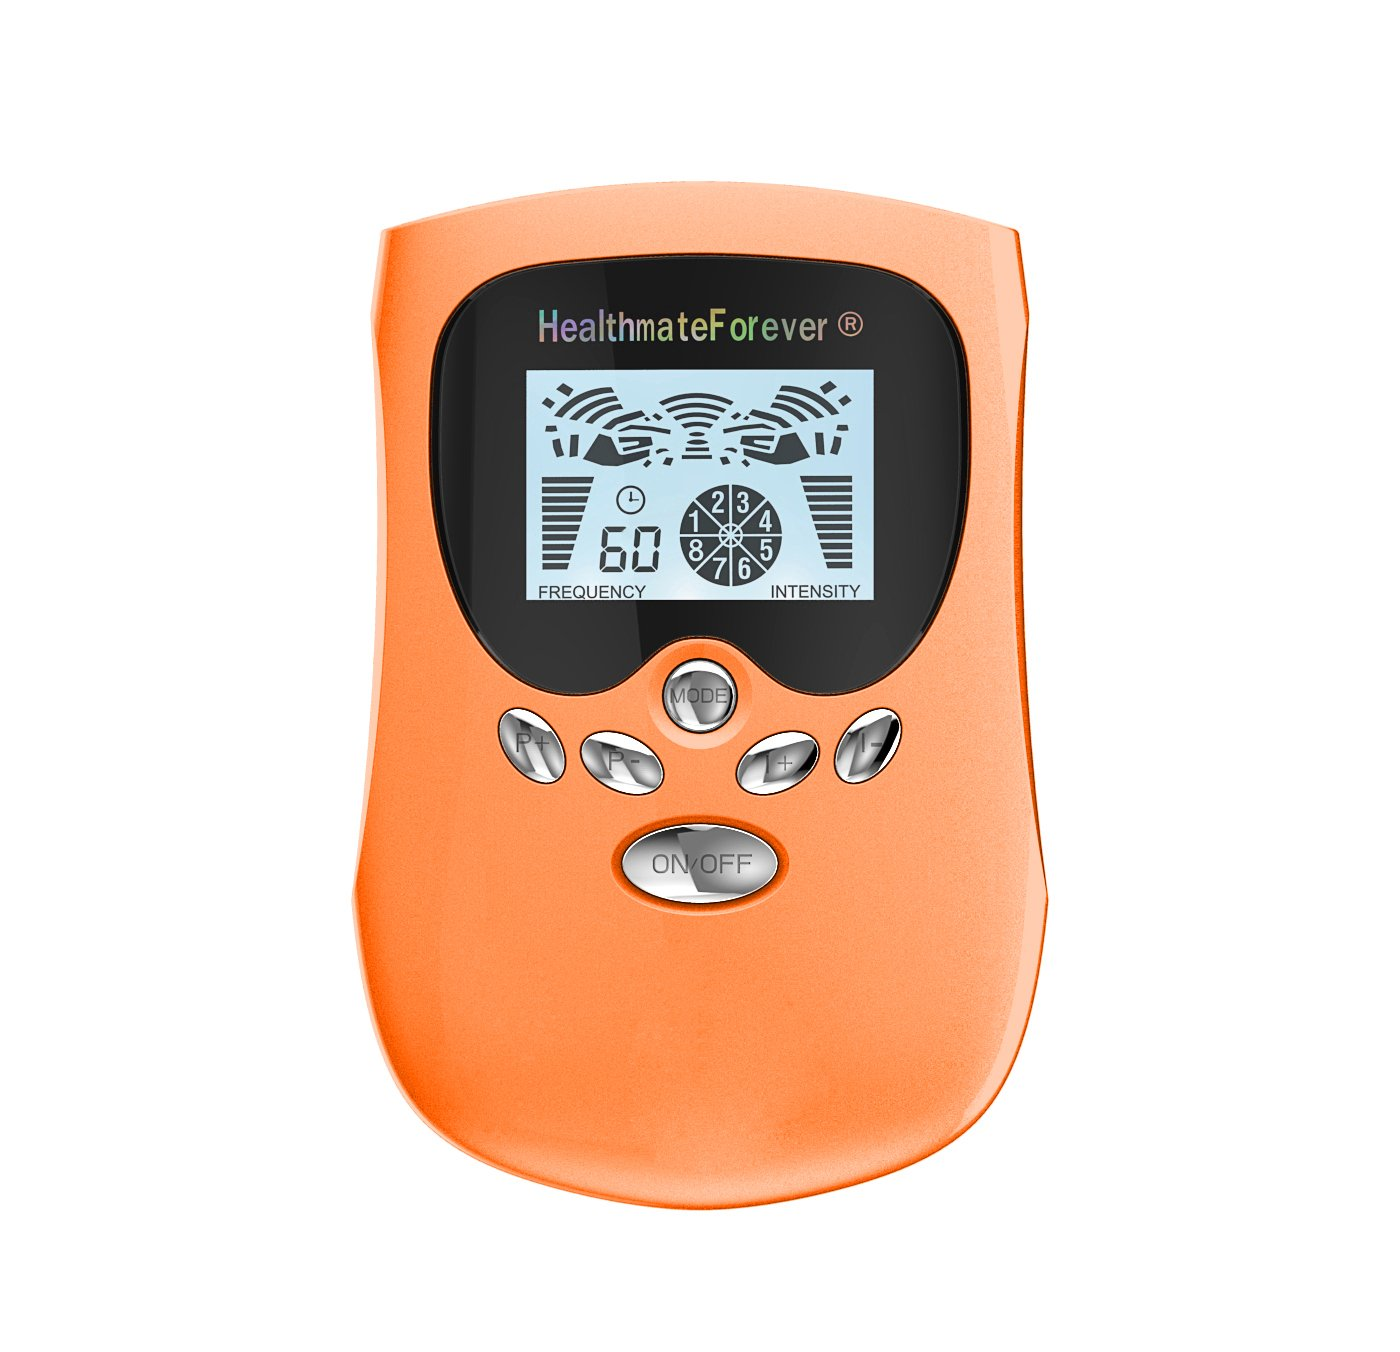 PM8 HealthmateForever TENS Unit Electrical Muscle Stimulator Orange + 4in1 Leads Wire and 1 Pair of